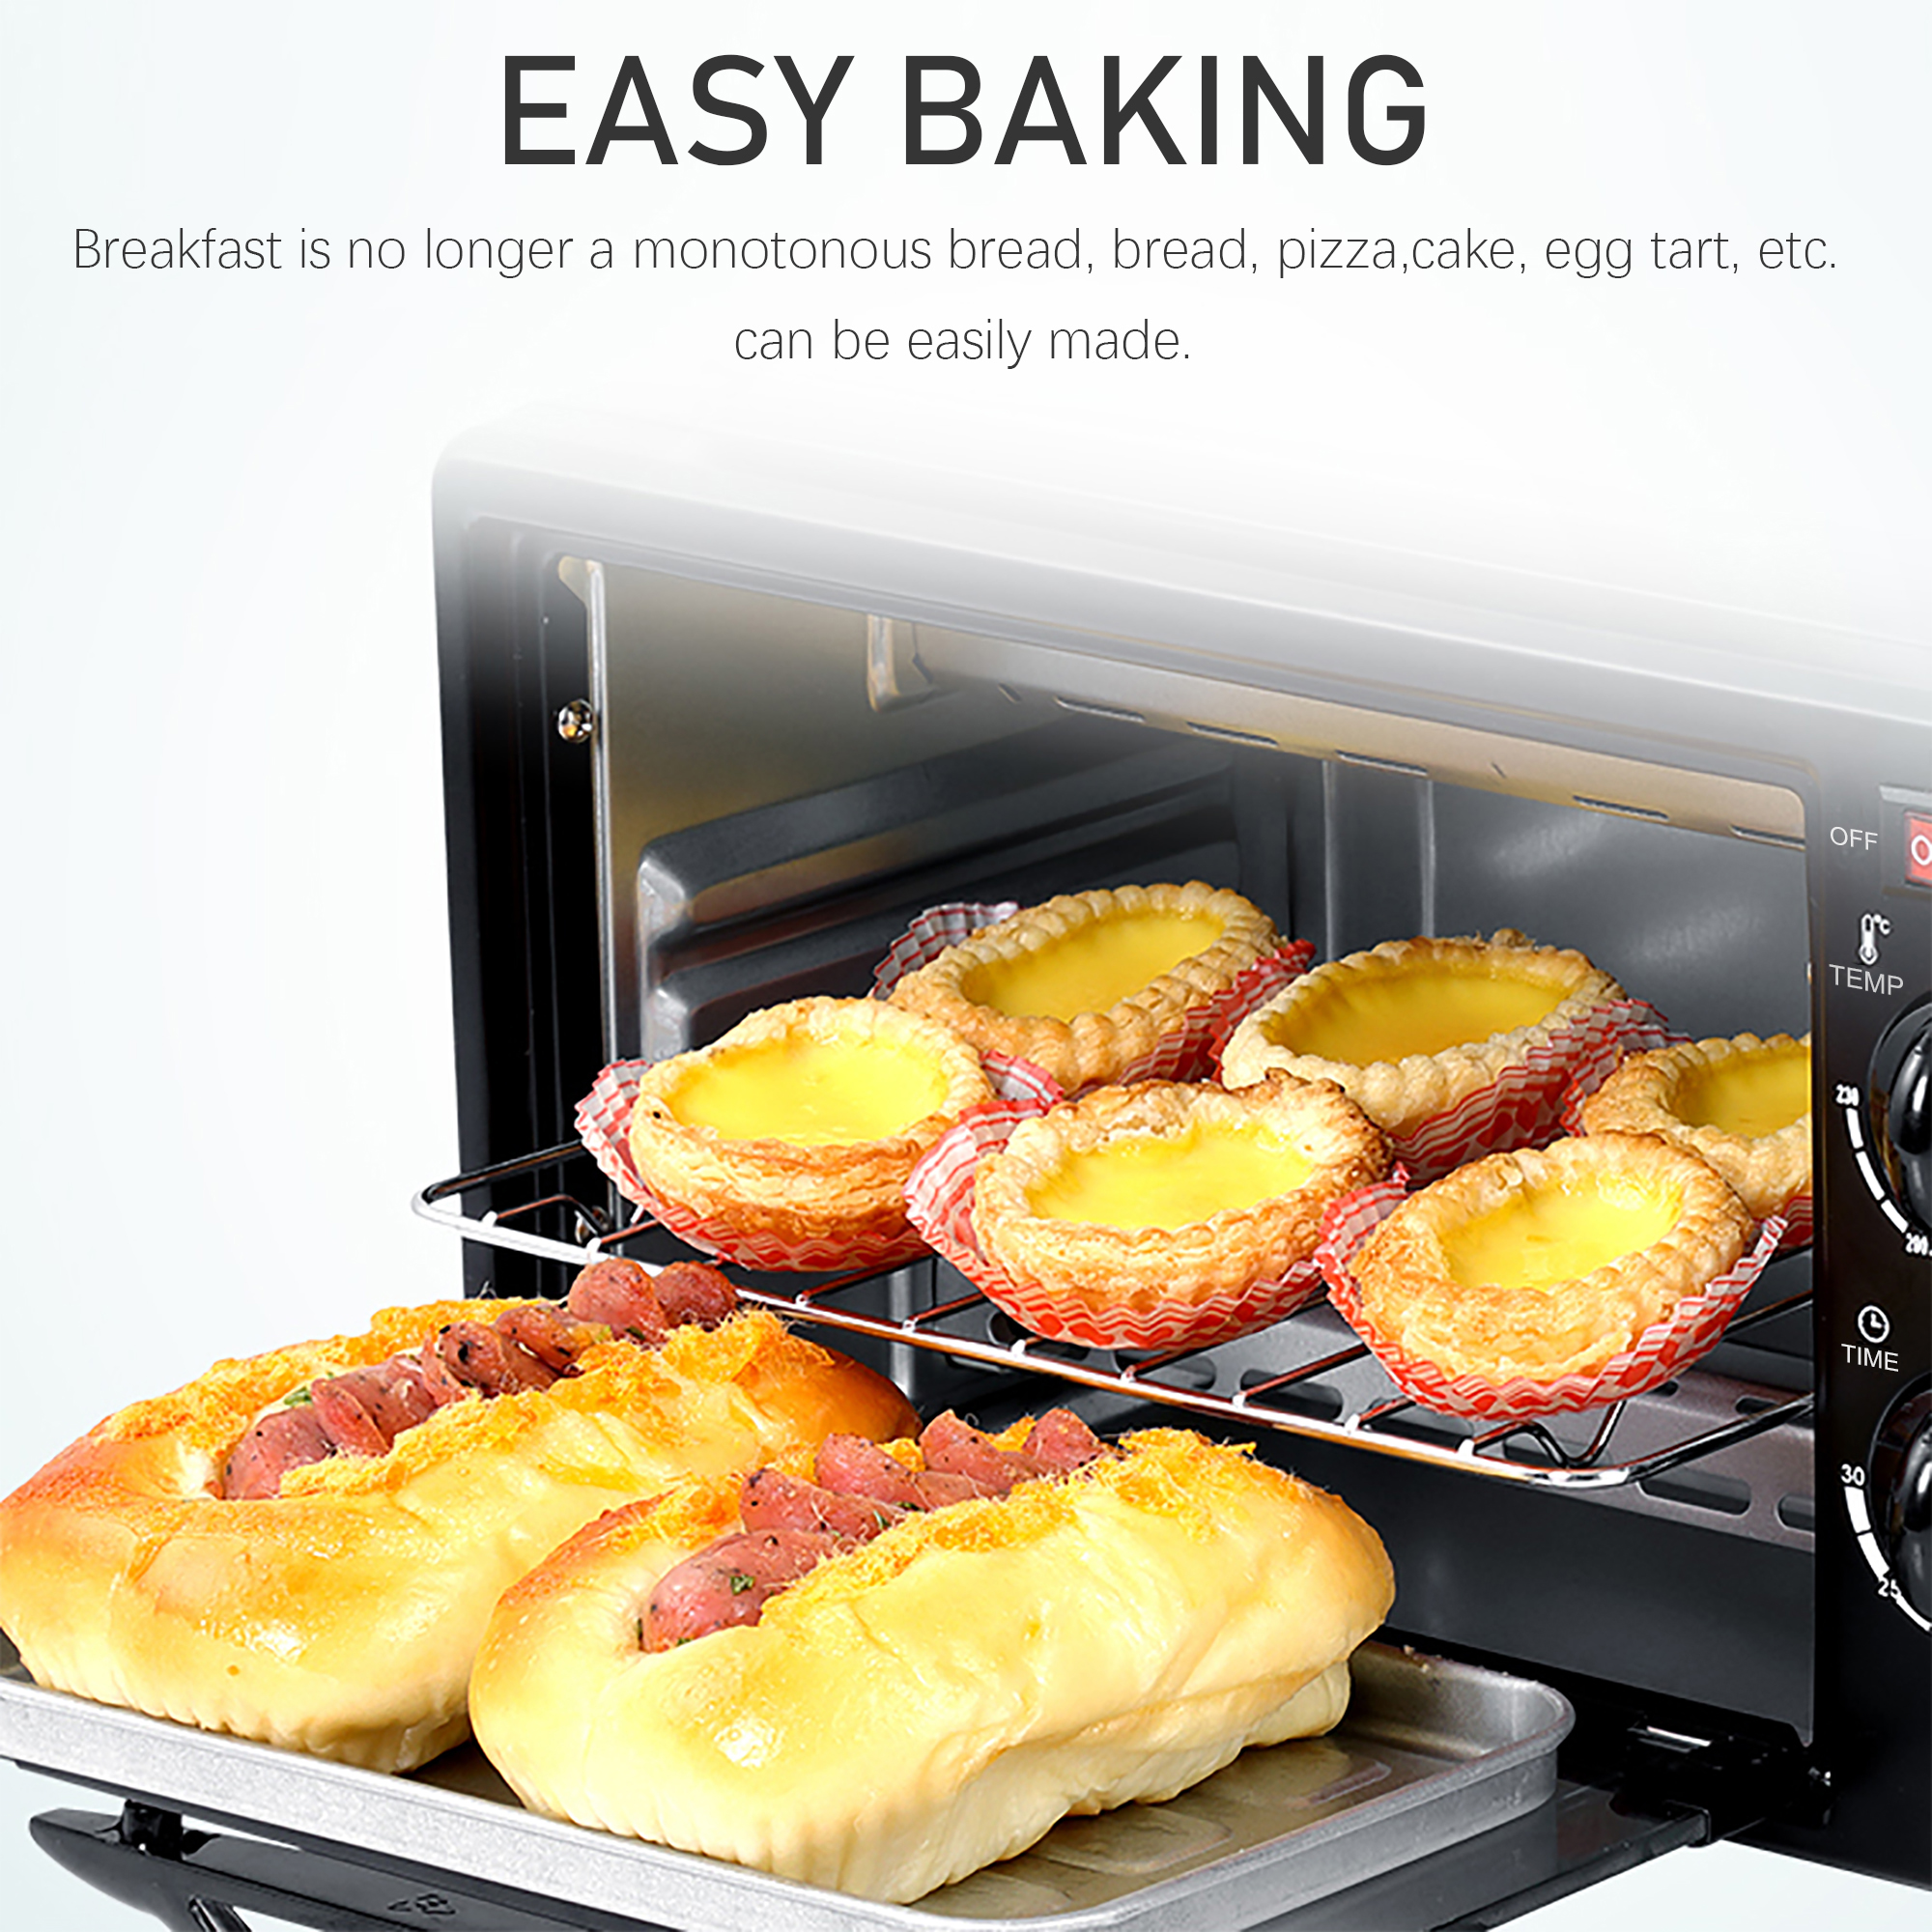 Electric Oven 3 In 1 Breakfast Making Machine Multifunction Drip Coffee Maker Household Bread Pizza Frying Pan Toaster Sonifer